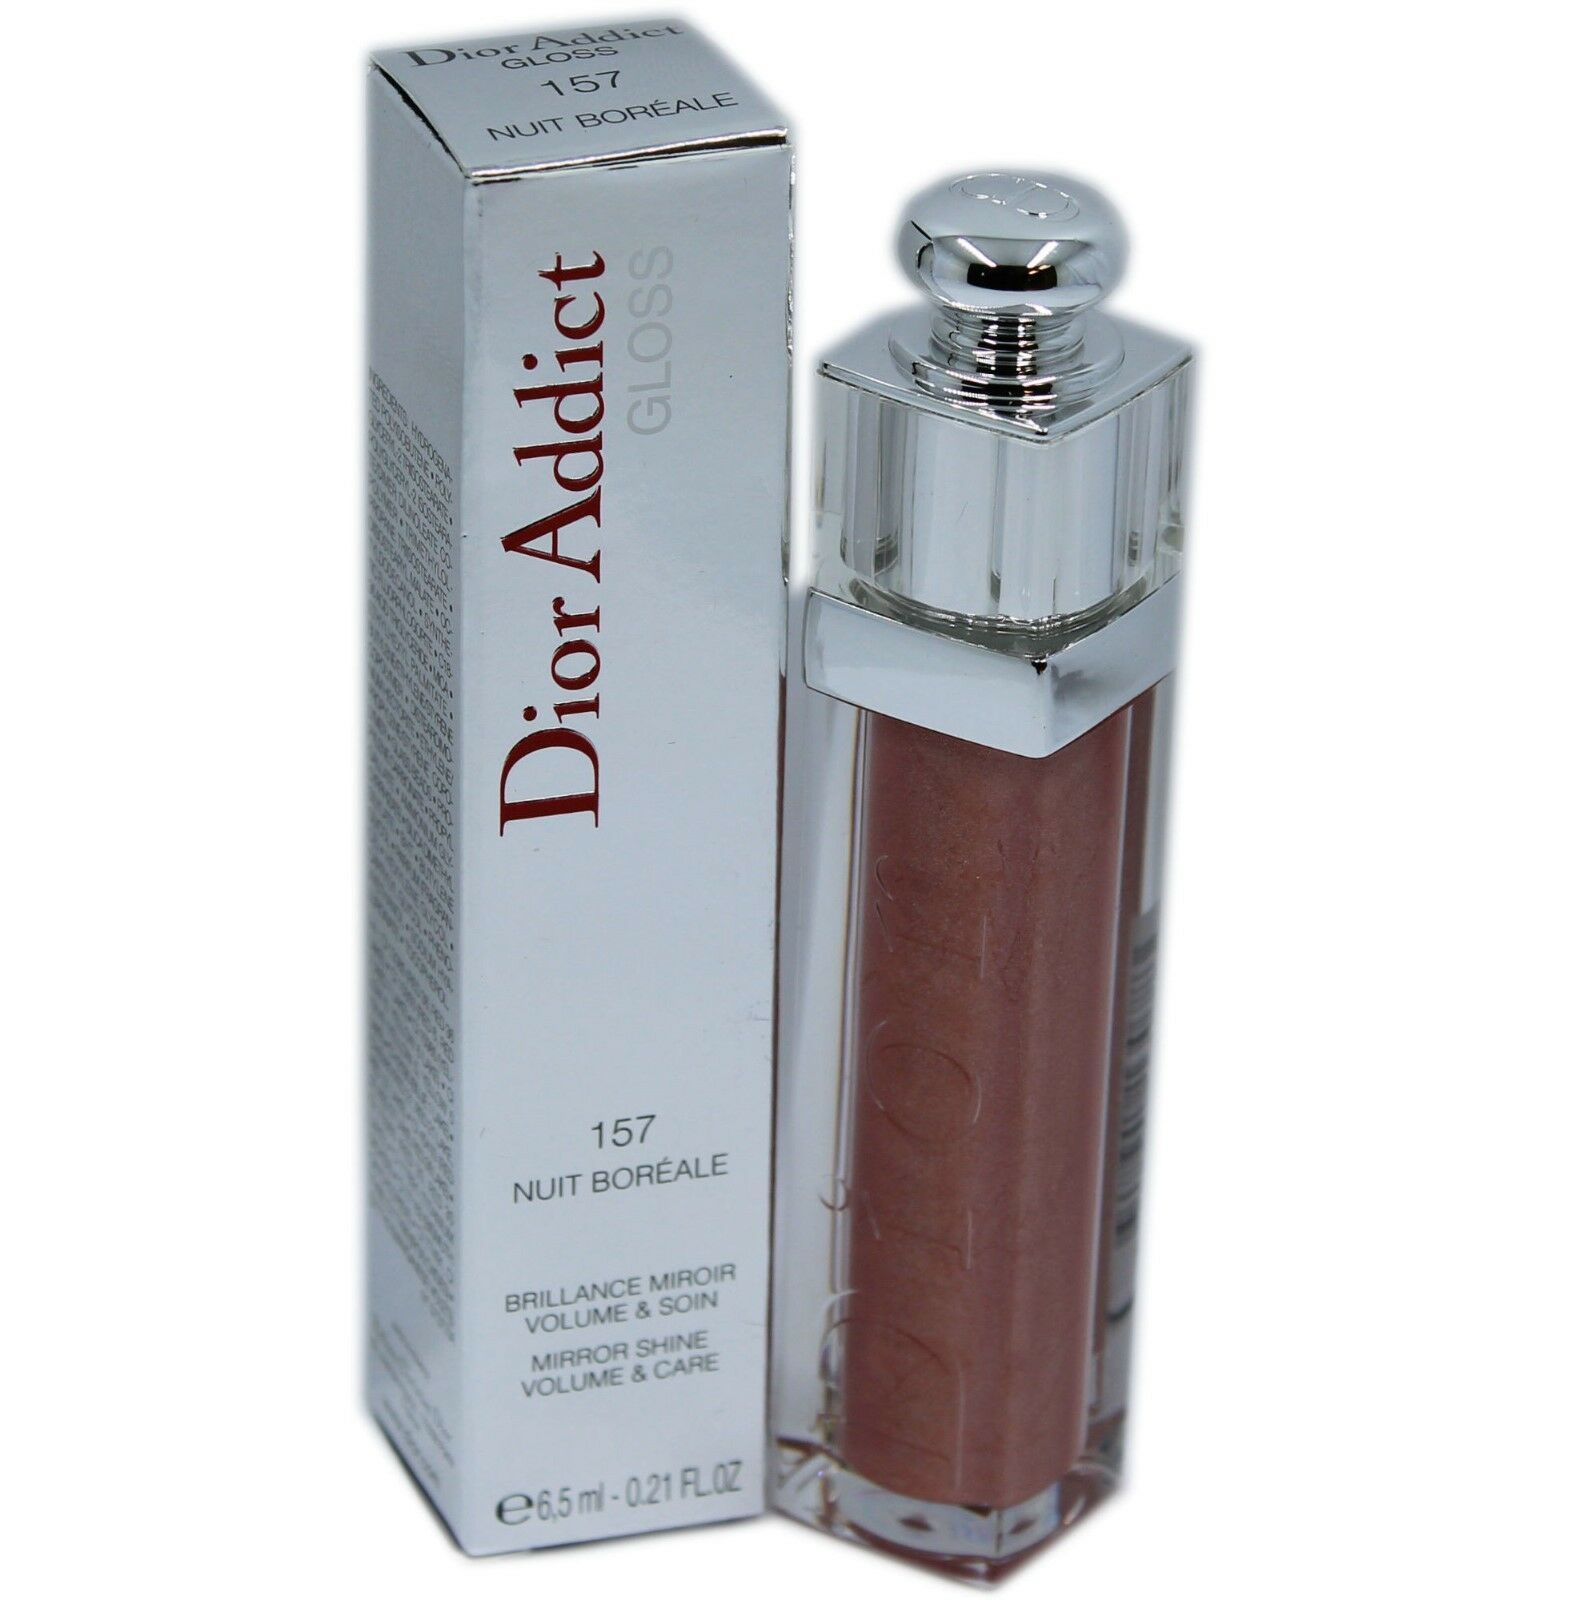 DIOR ADDICT GLOSS MIRROR SHINE VOLUME & CARE 6.5ML #157 NUIT BOREALE NIB - $33.17